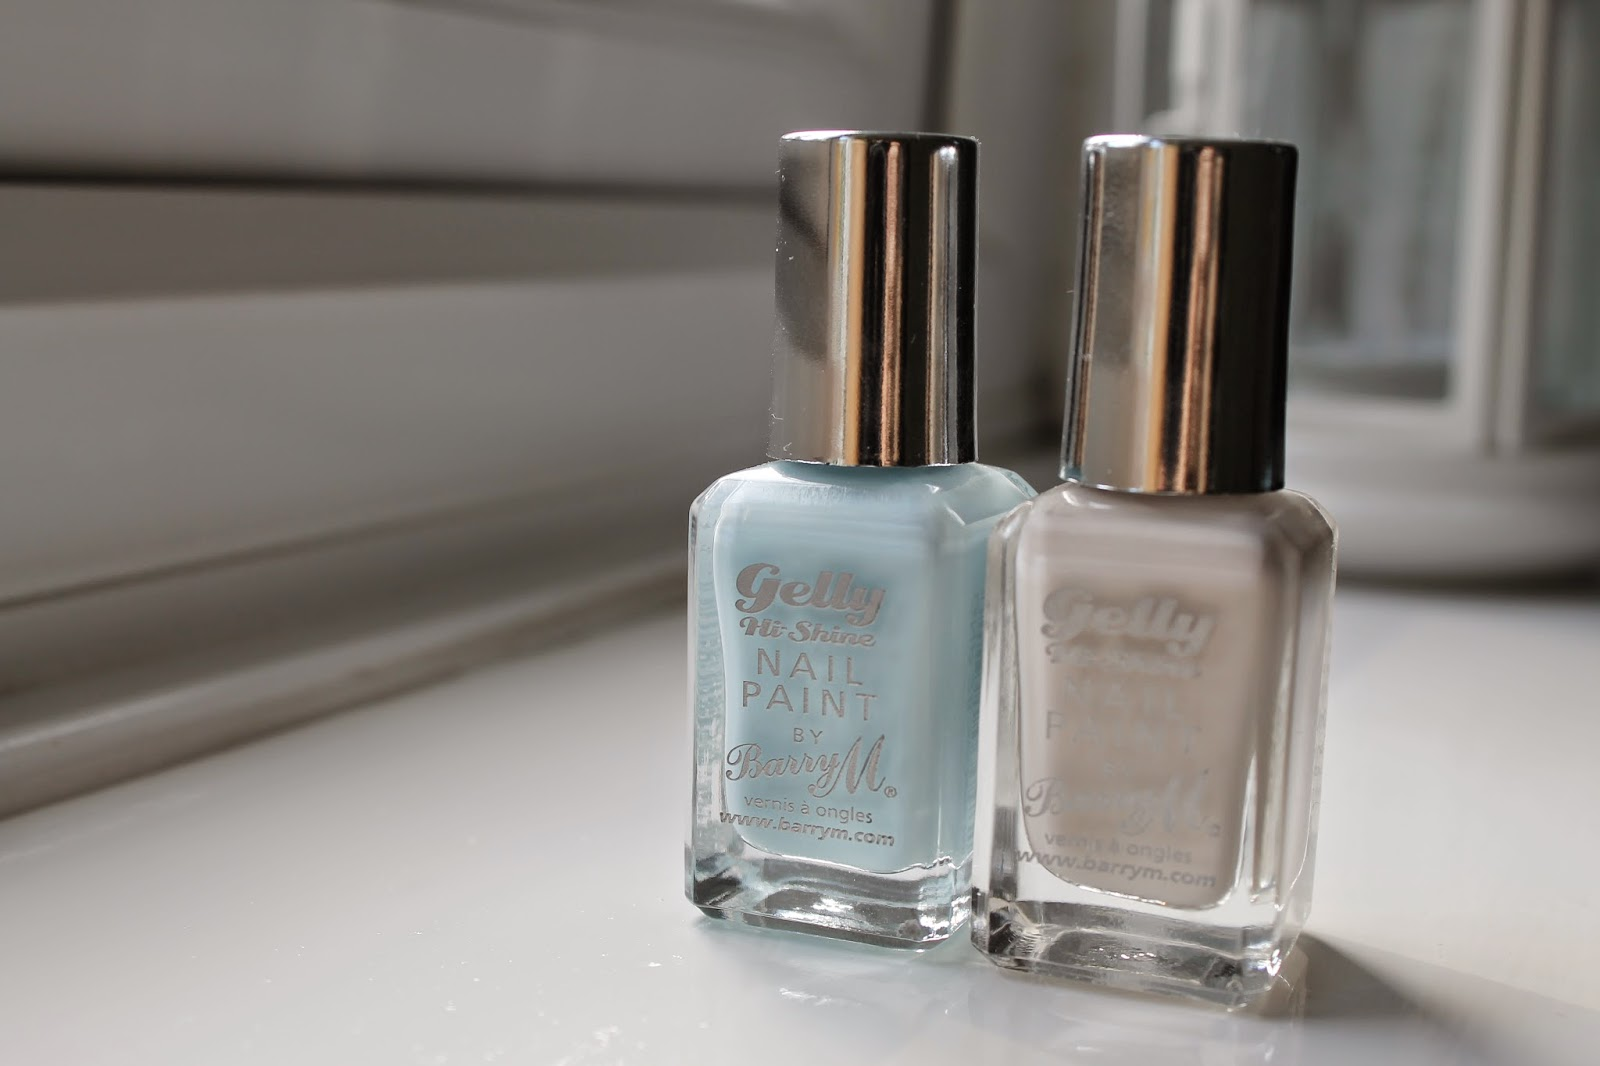 Barry M Gelly Hi-Shine Coconut and Huckleberry